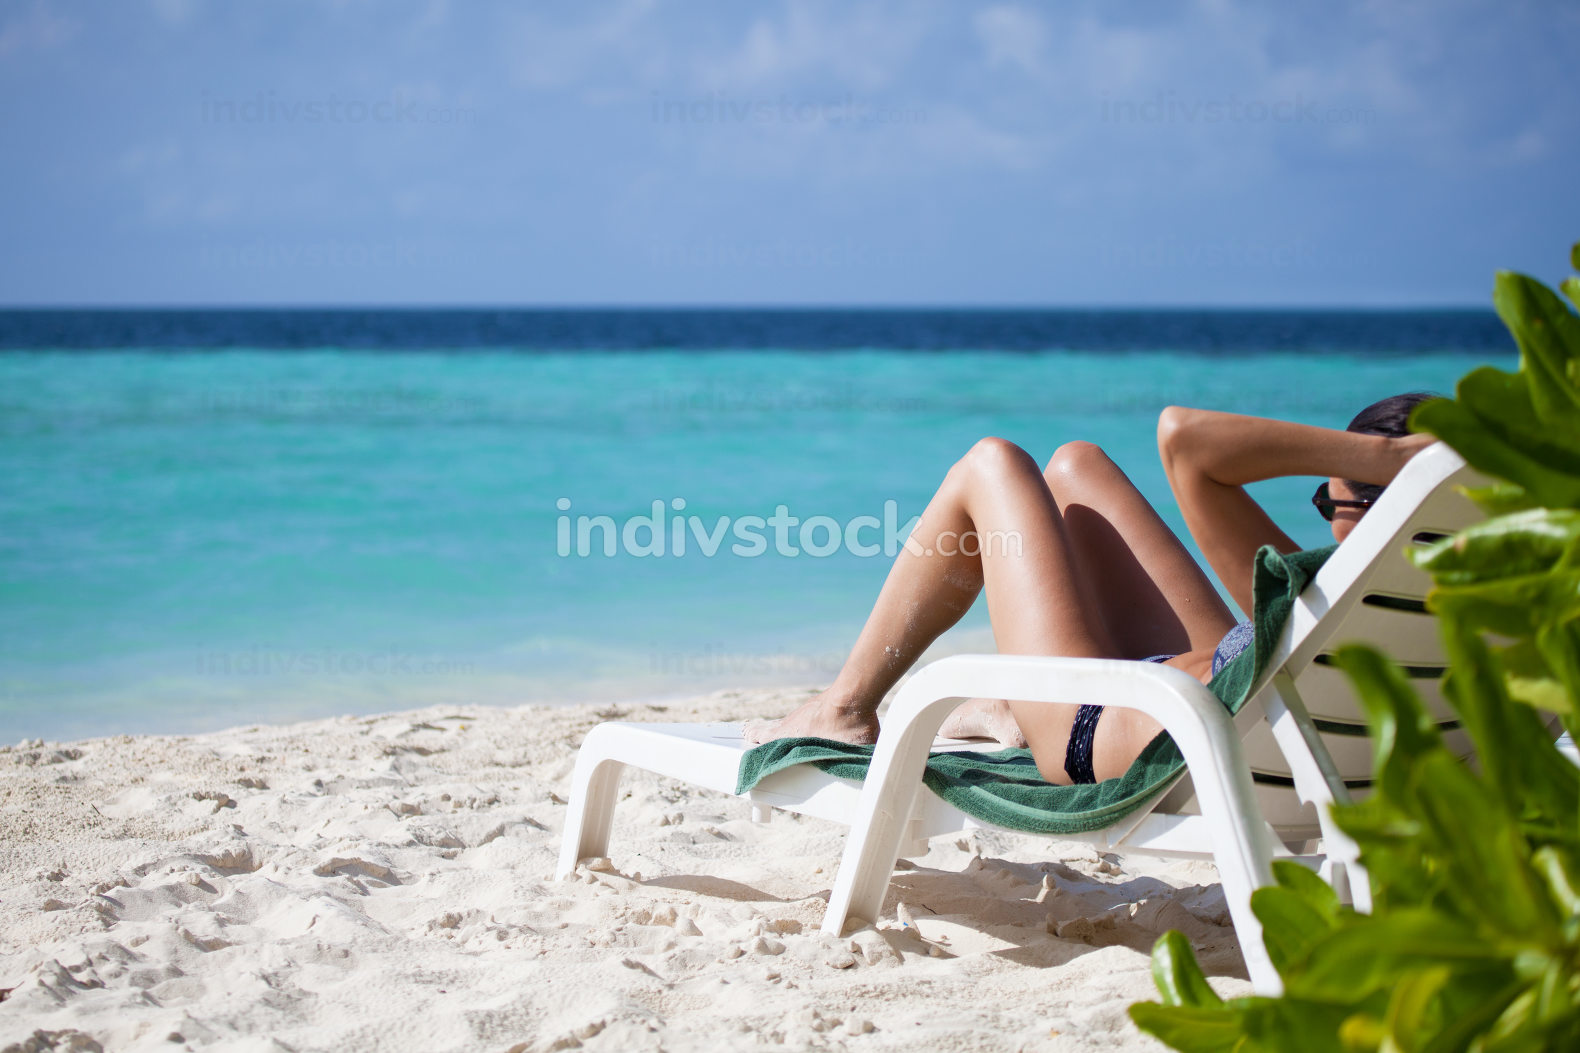 Woman on a lounger on the beach